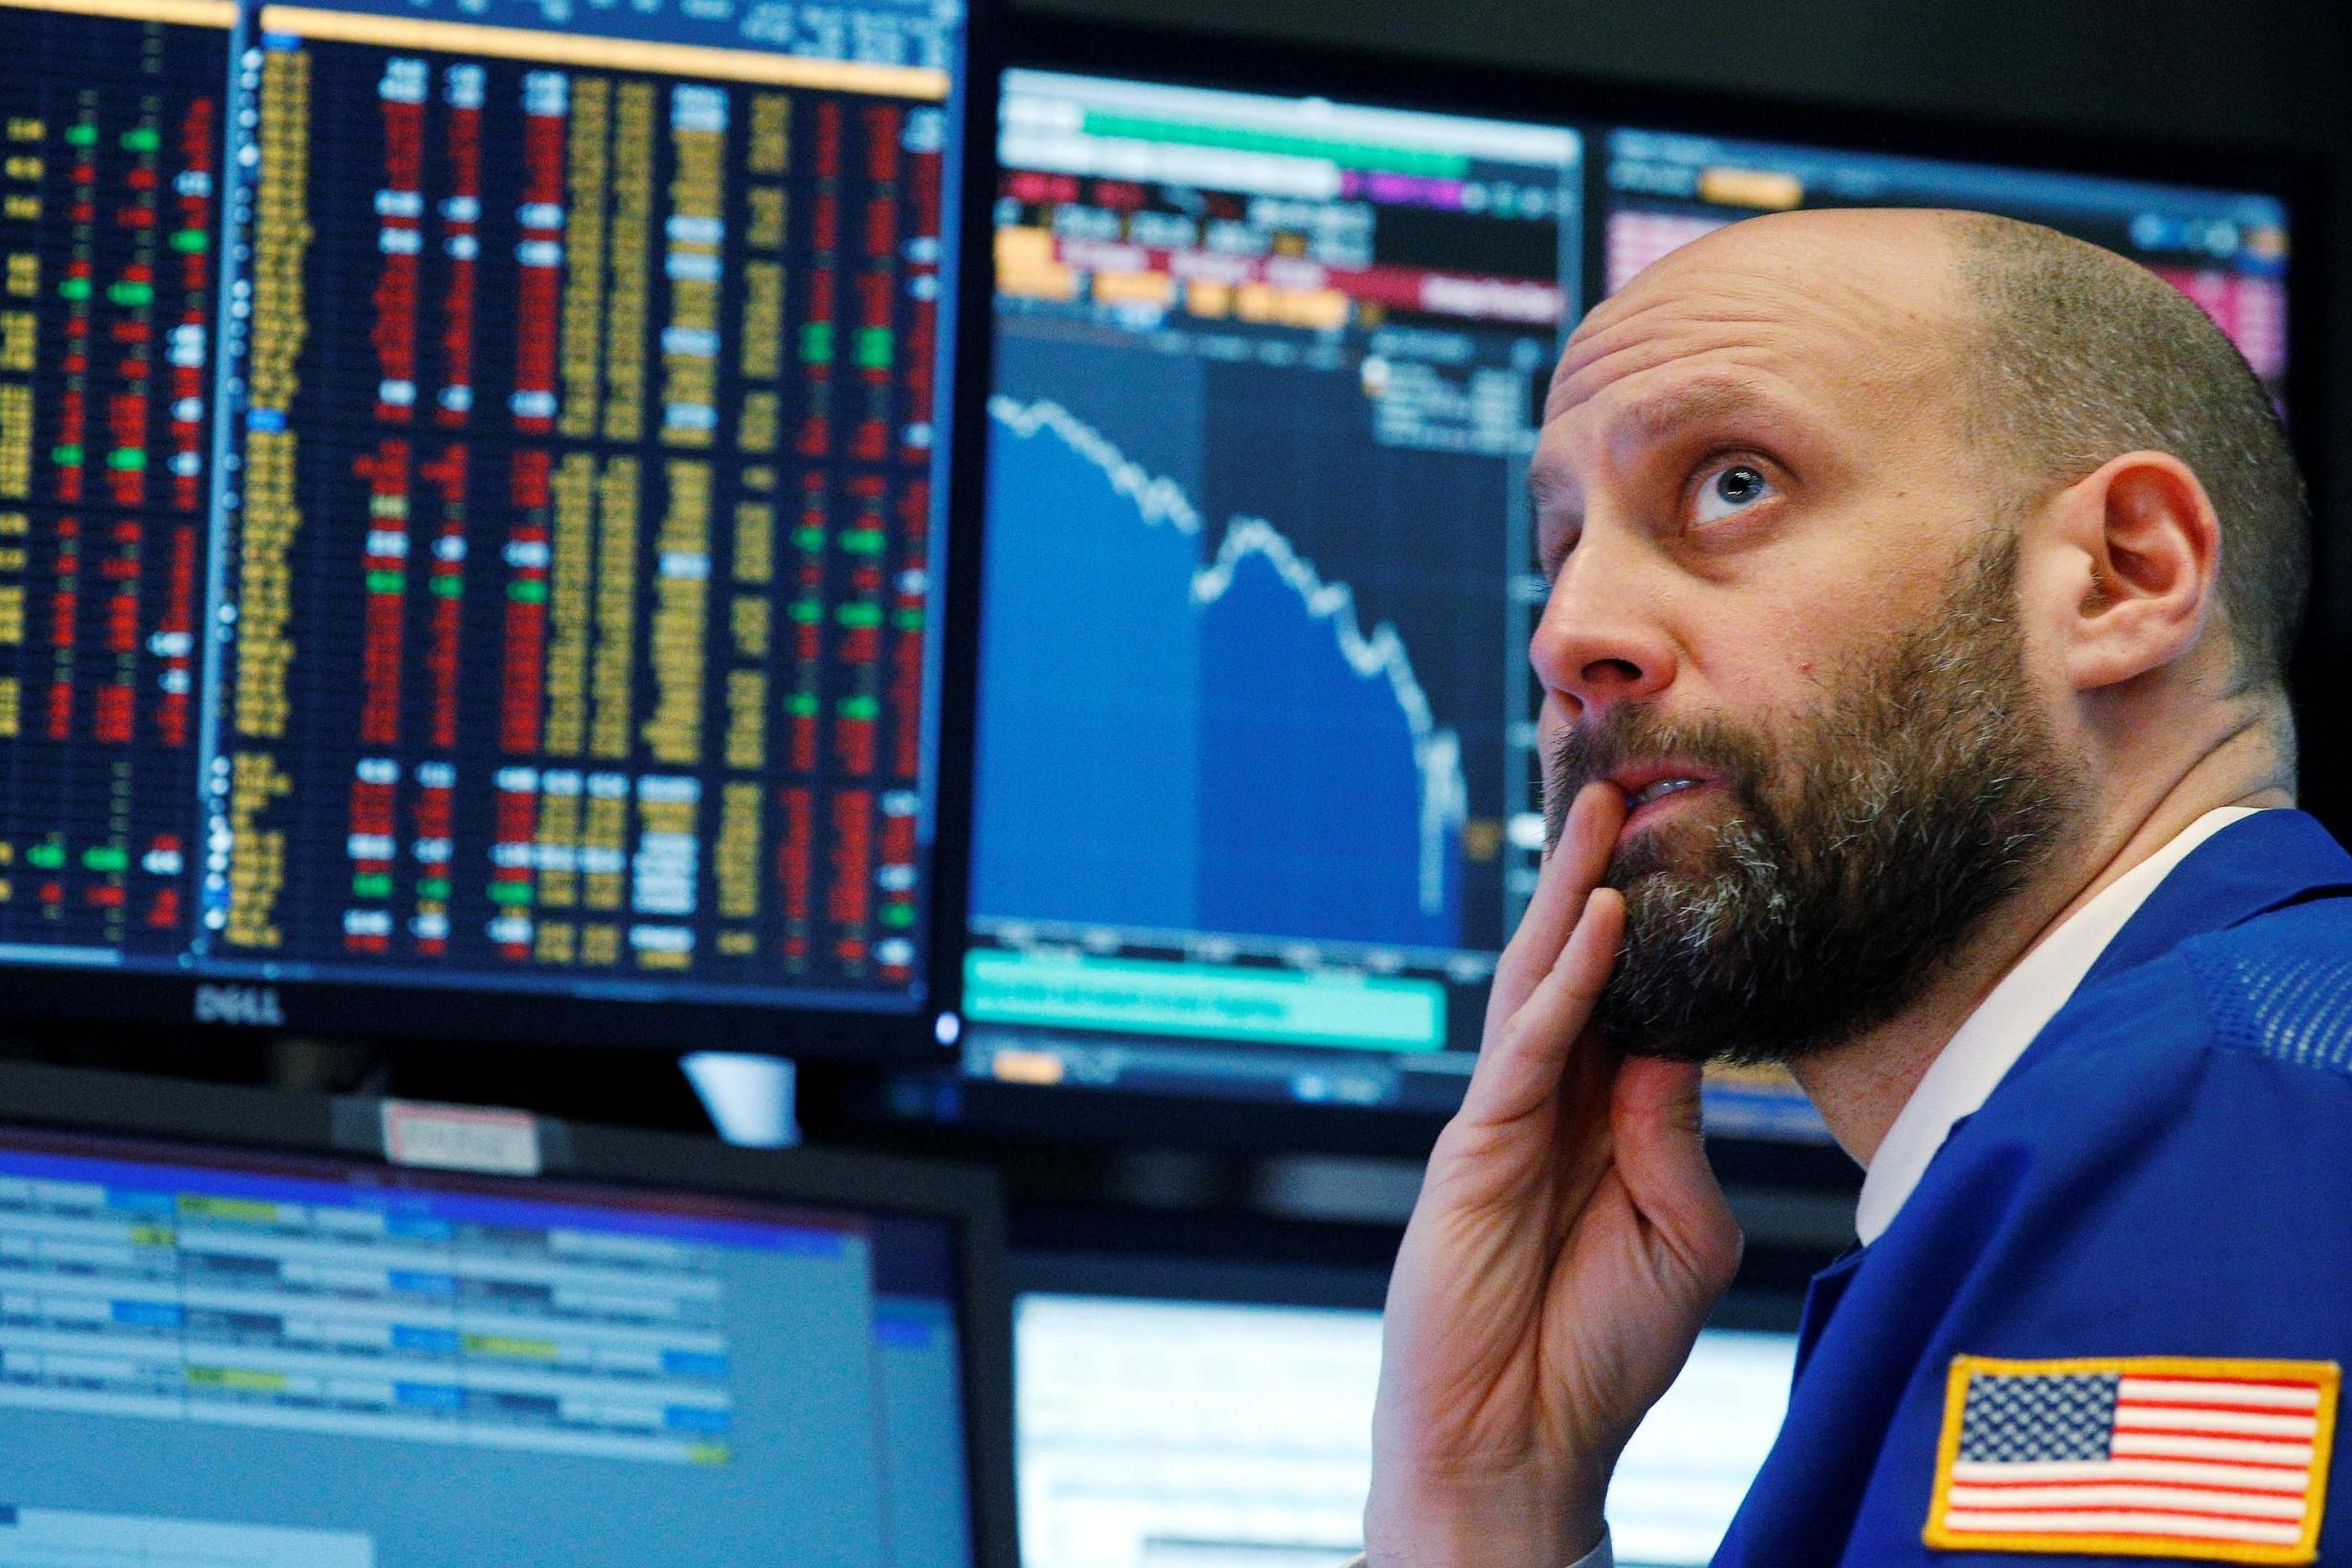 Bloomberg reports: US stock market crashed to record high